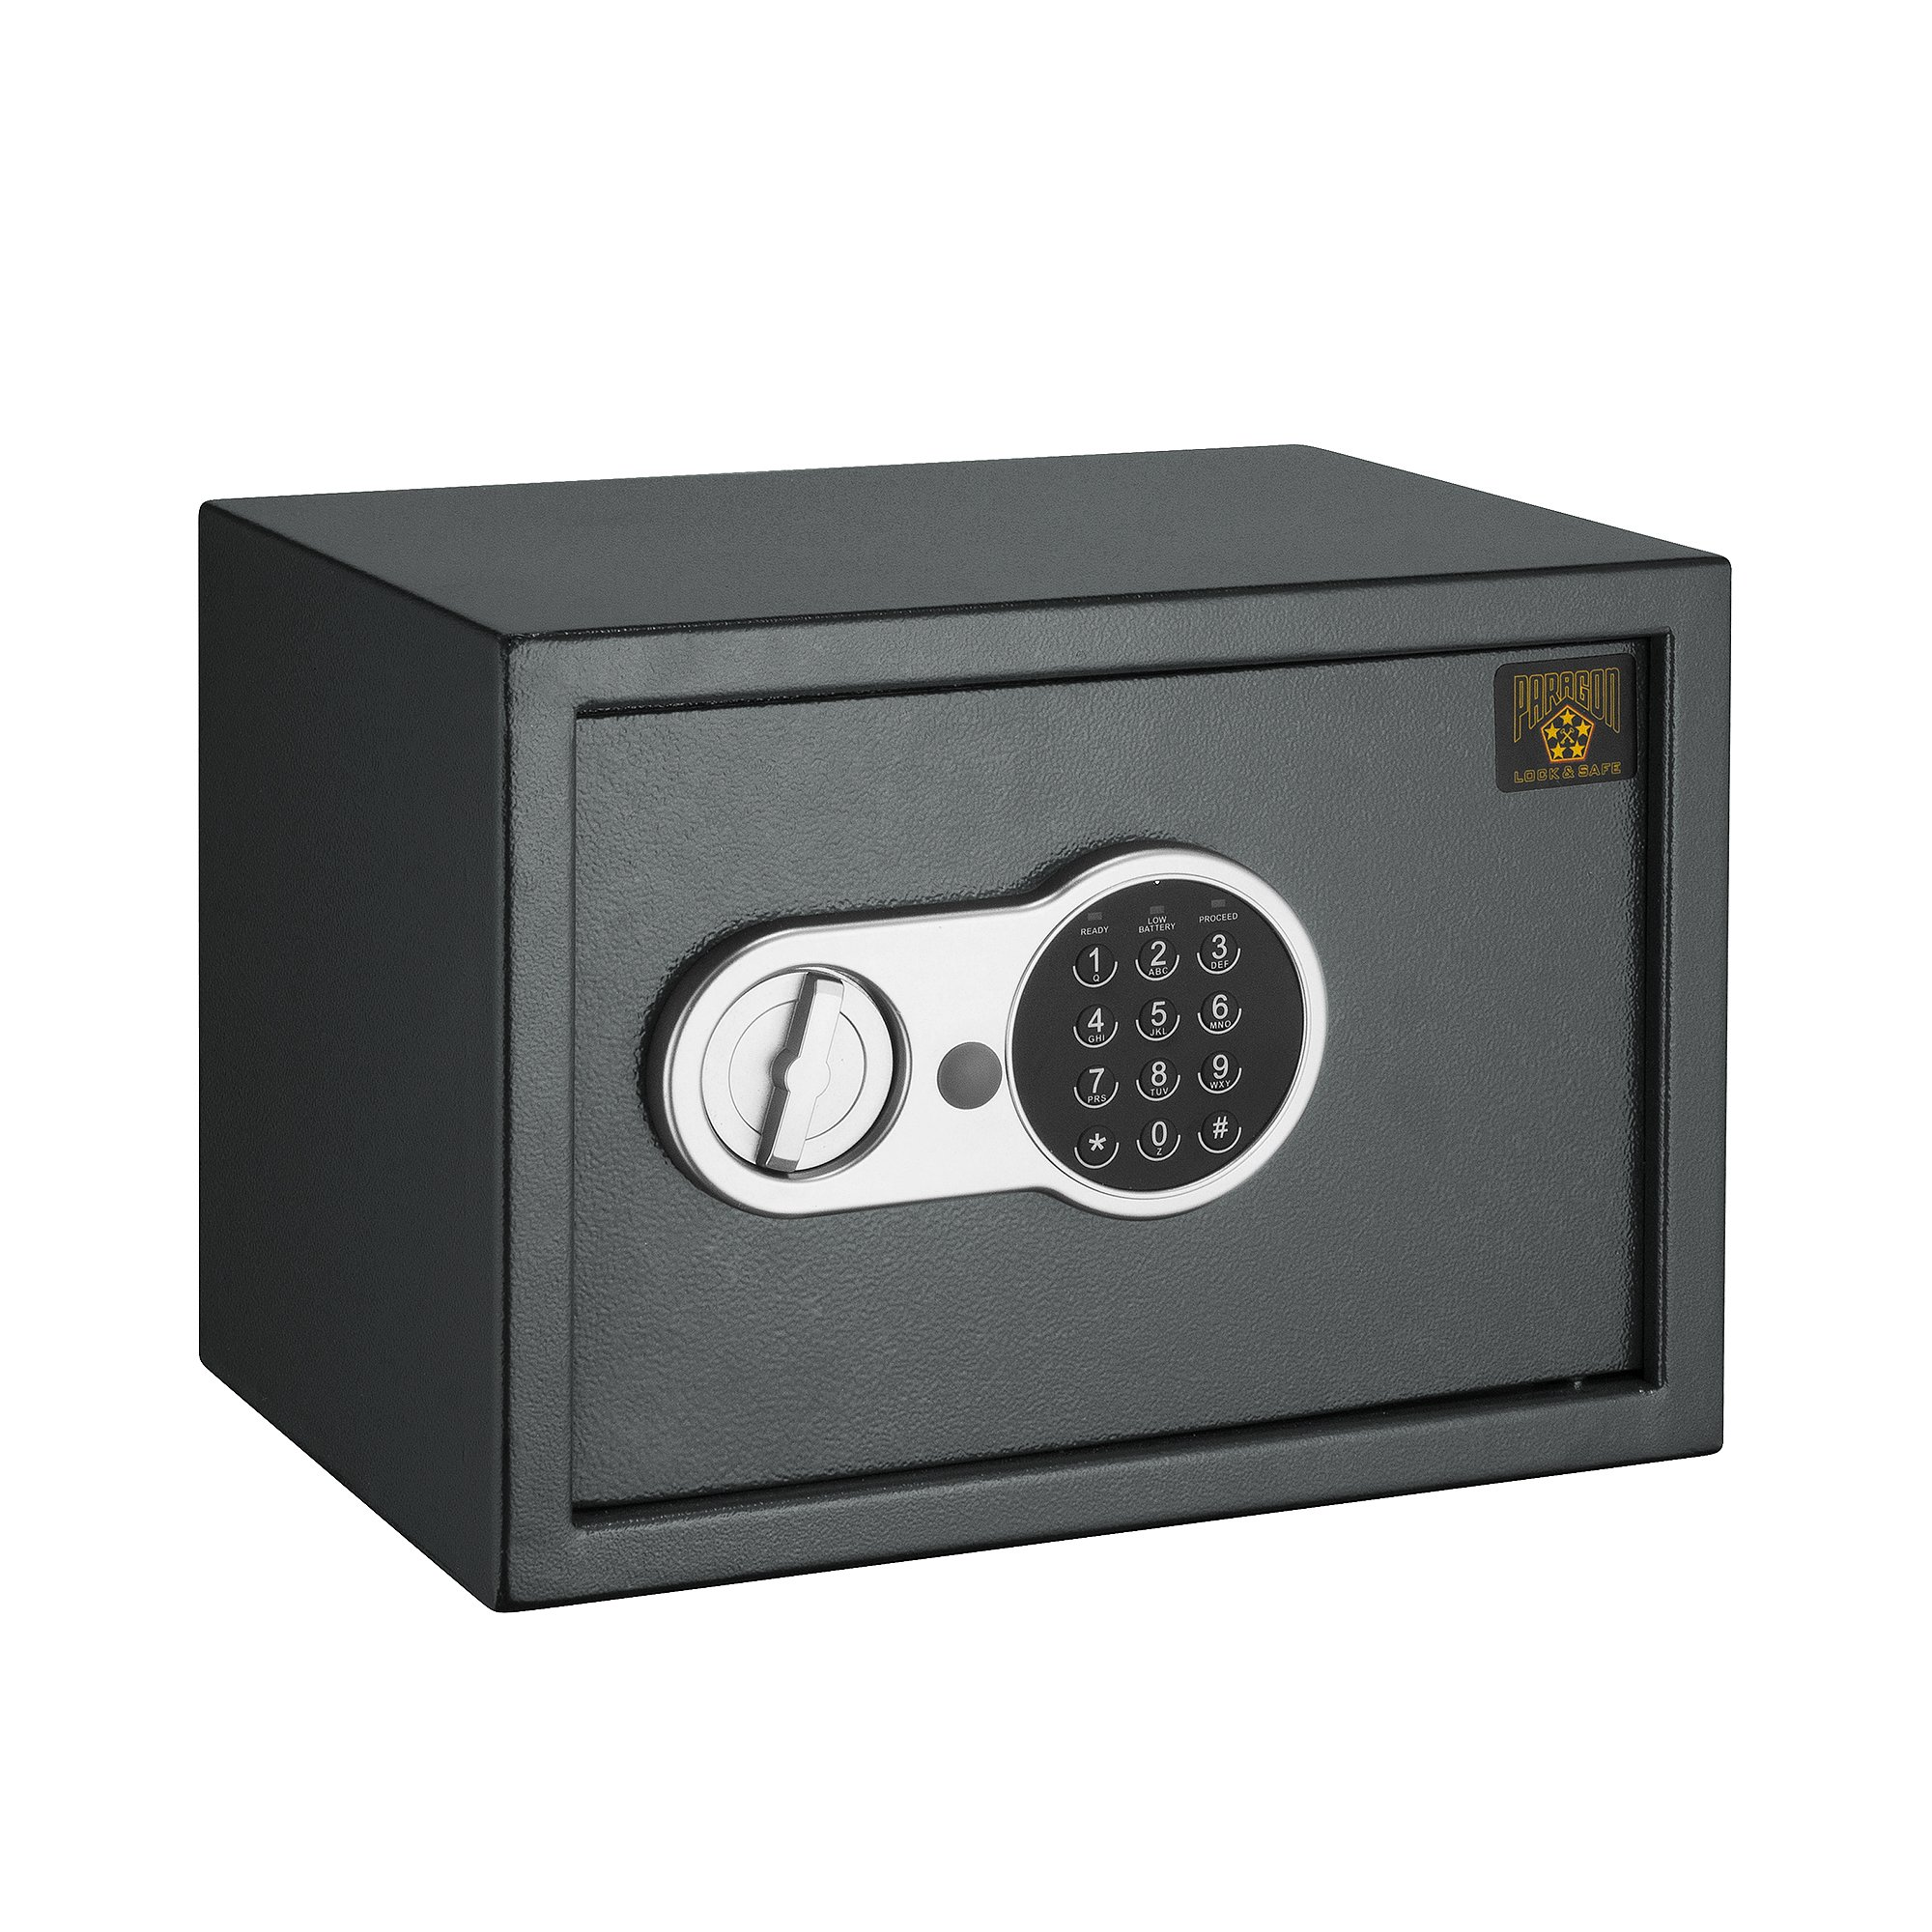 Paragon Lock & Safe Electronic .6 CF Digital Entry Deluxe Safe for Home Security by Paragon Lock and Safe